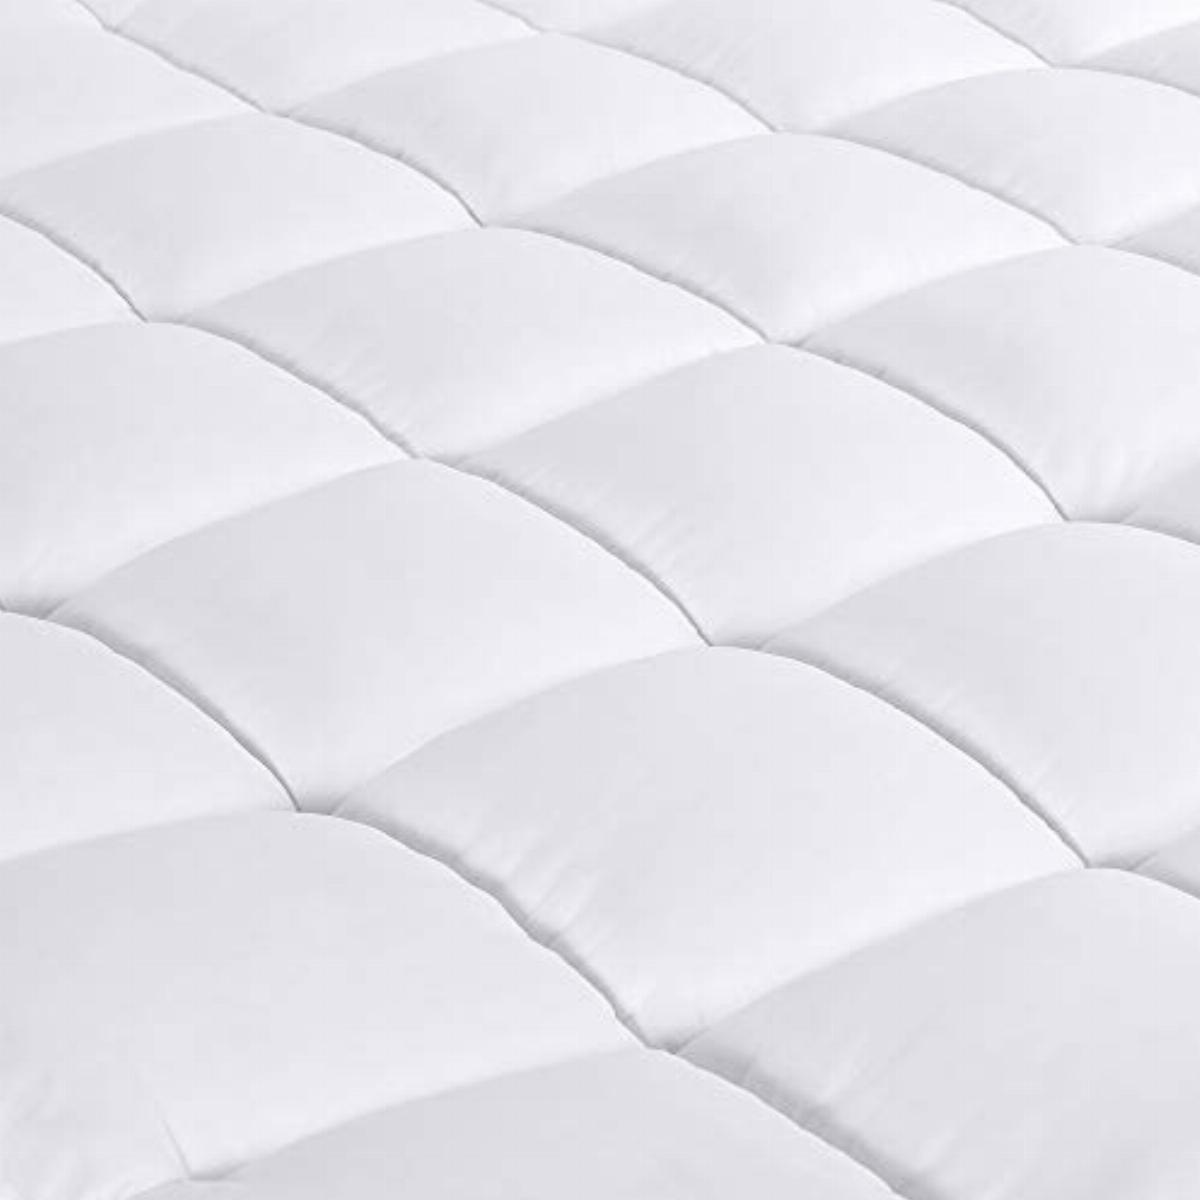 https www comparus co uk products d g the duck and goose co overfilled extra thick mattress topper king size gel fiber filled bed topper pillowtop mattress pad king 76x80x2 white block border construction 982009 htm